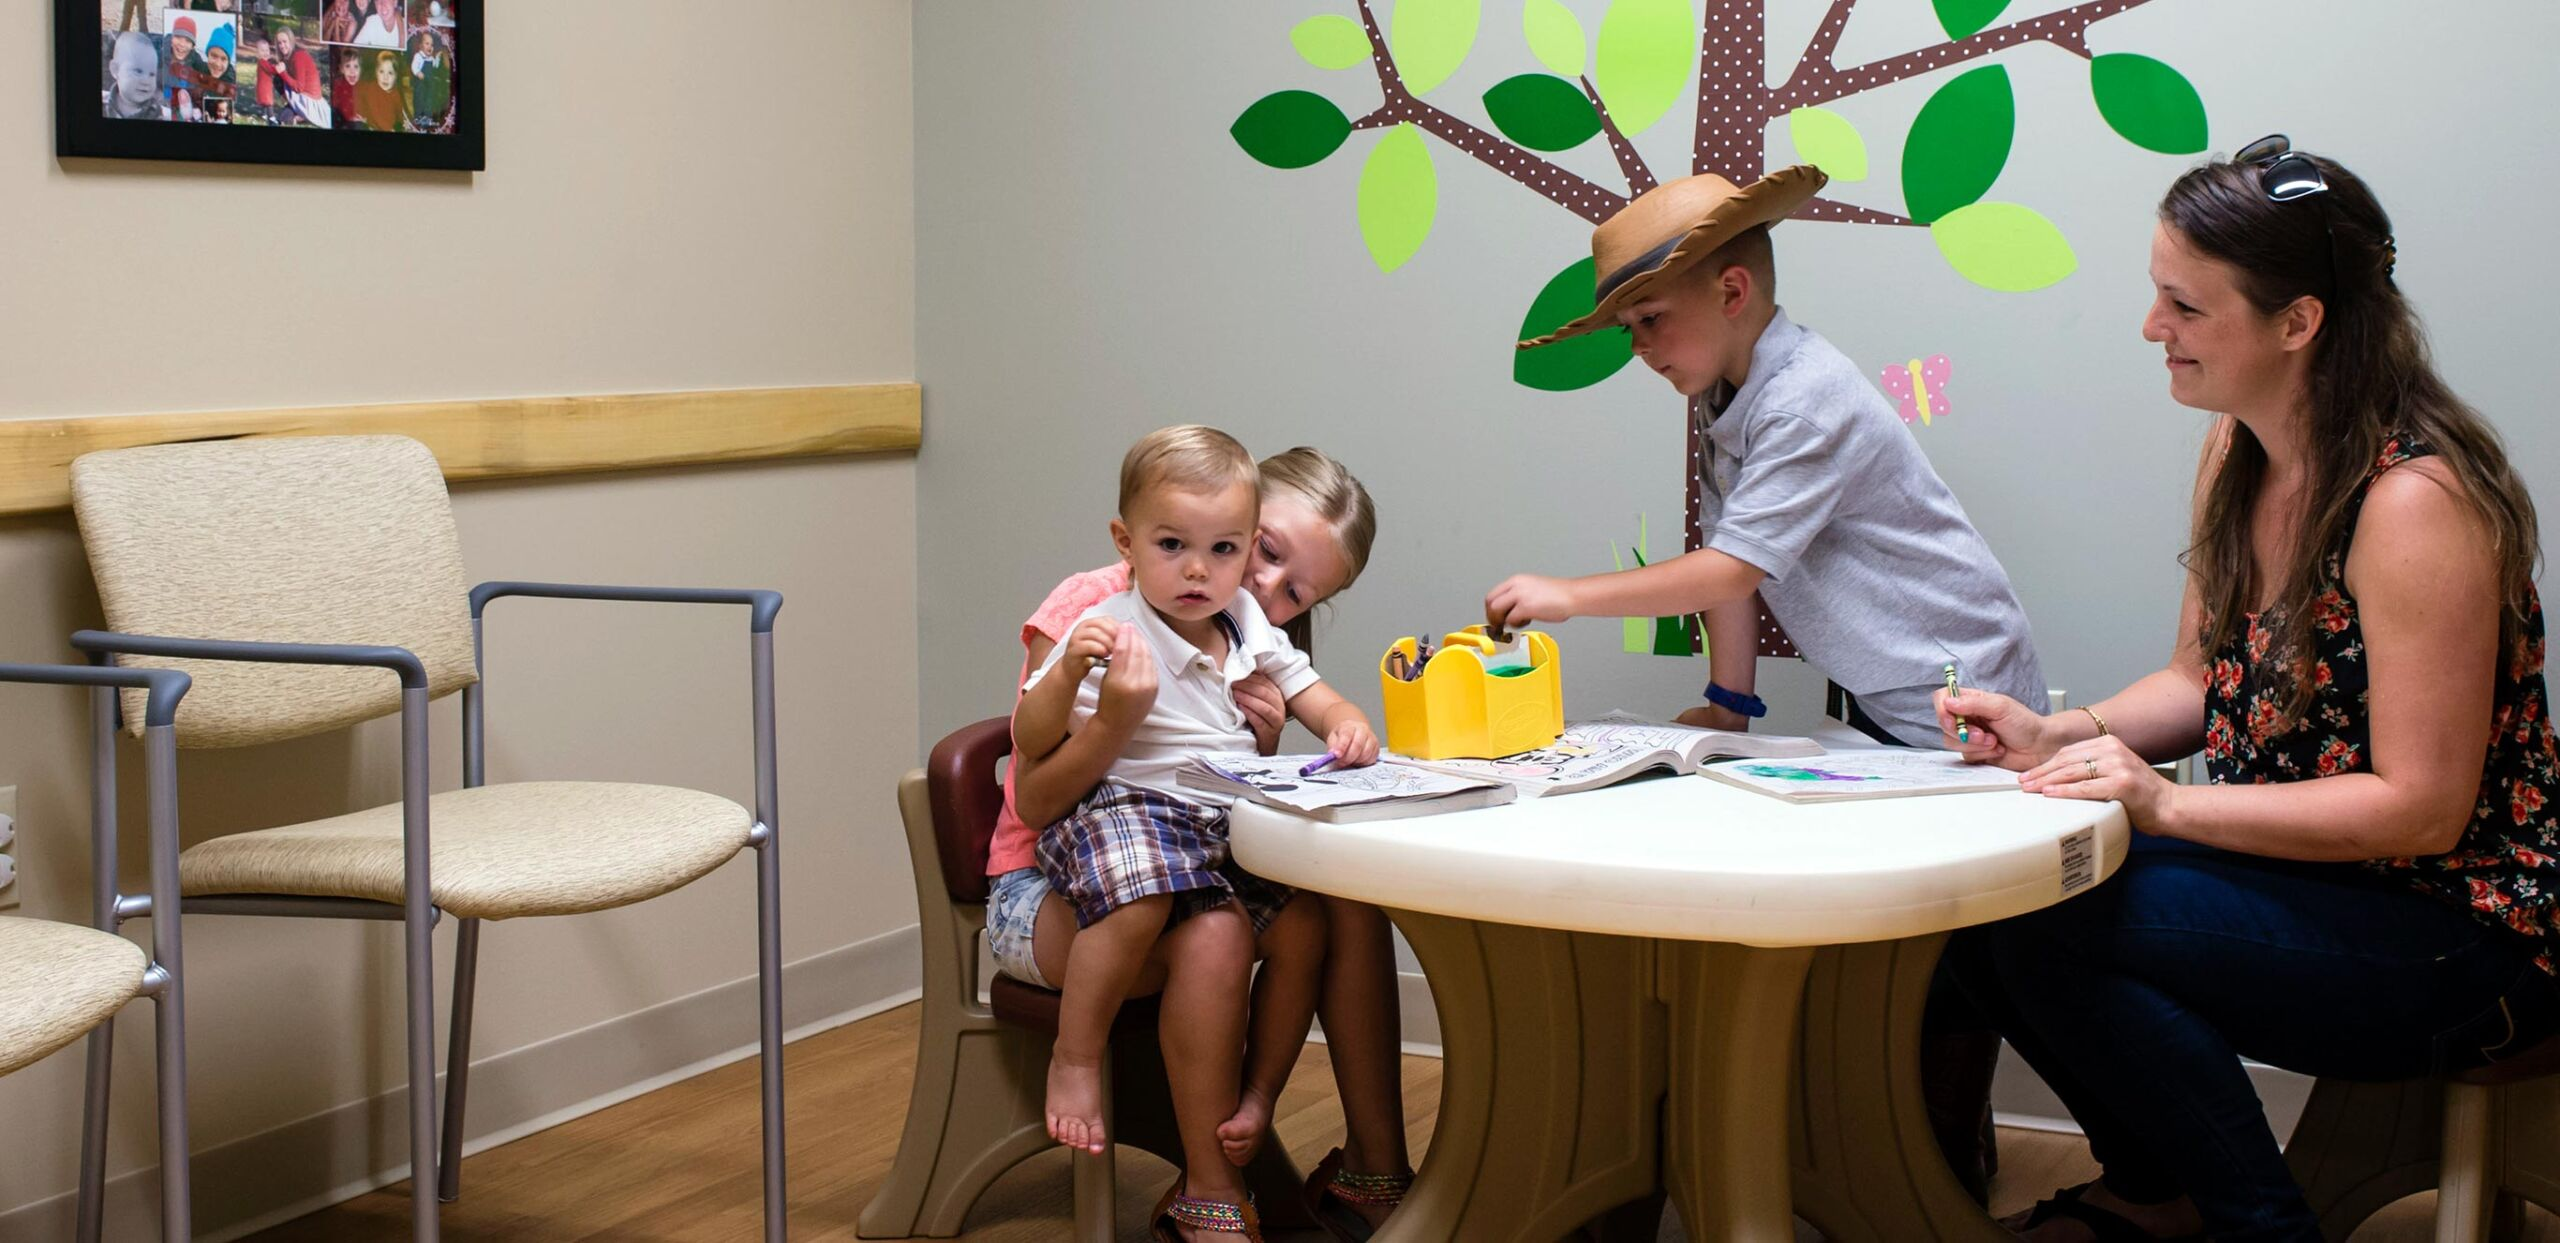 Mothers play with their children in children's area of waiting room at South Deerfield Family Medicine and Sugarloaf Pediatrics, 29 Elm Street, South Deerfield, MA 01373.